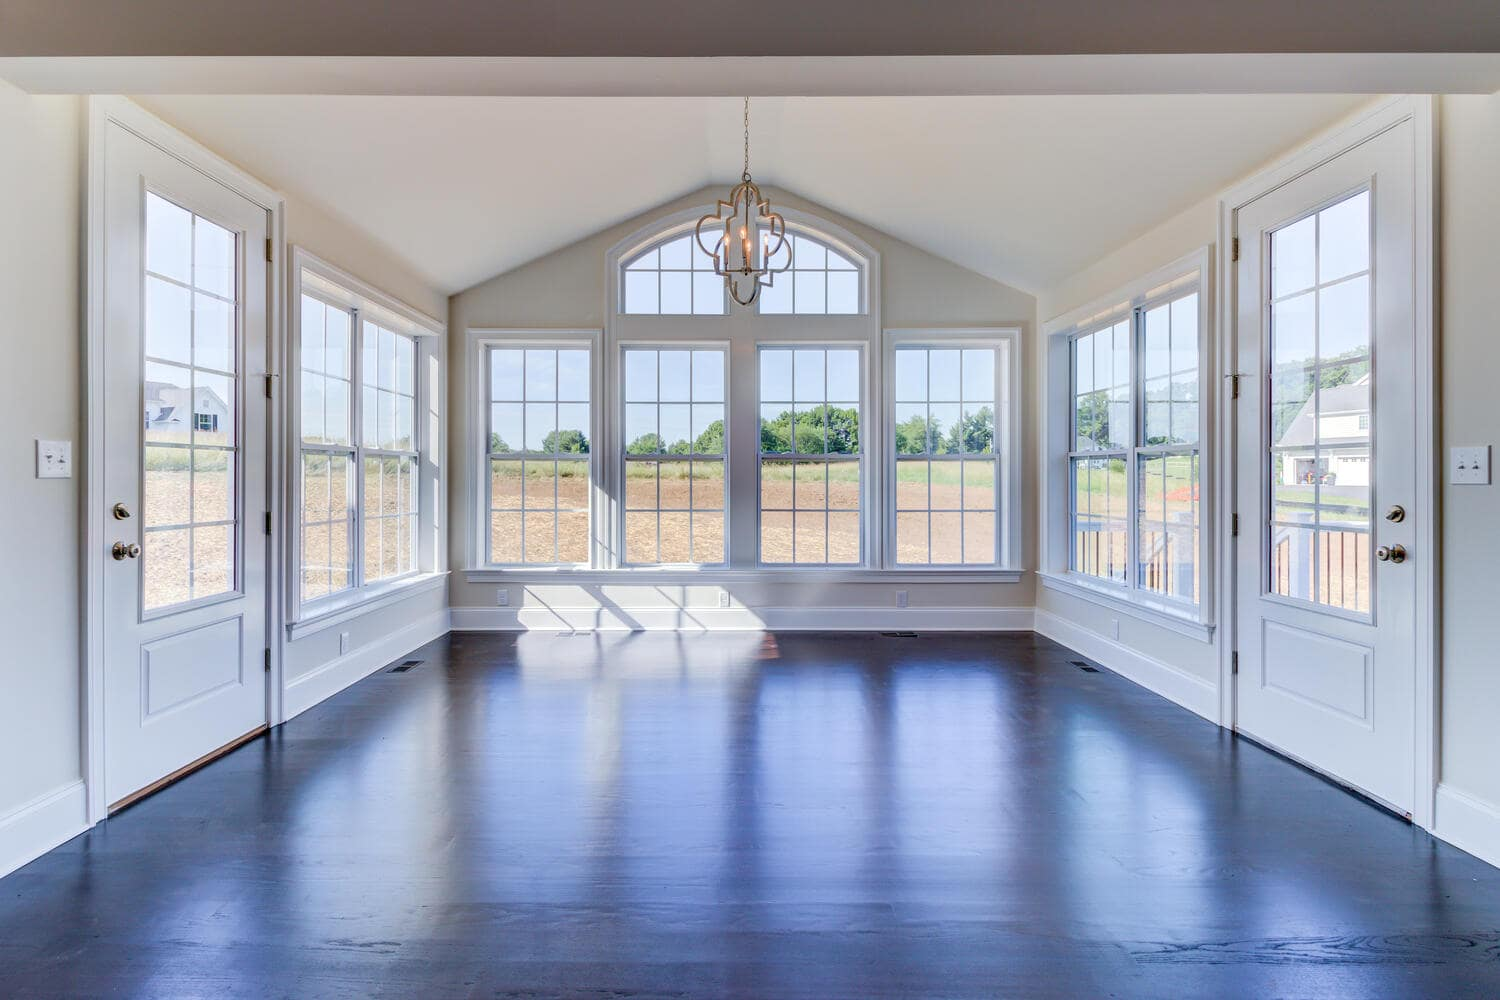 Gathering area with windows in a new home from Bentley Homes.